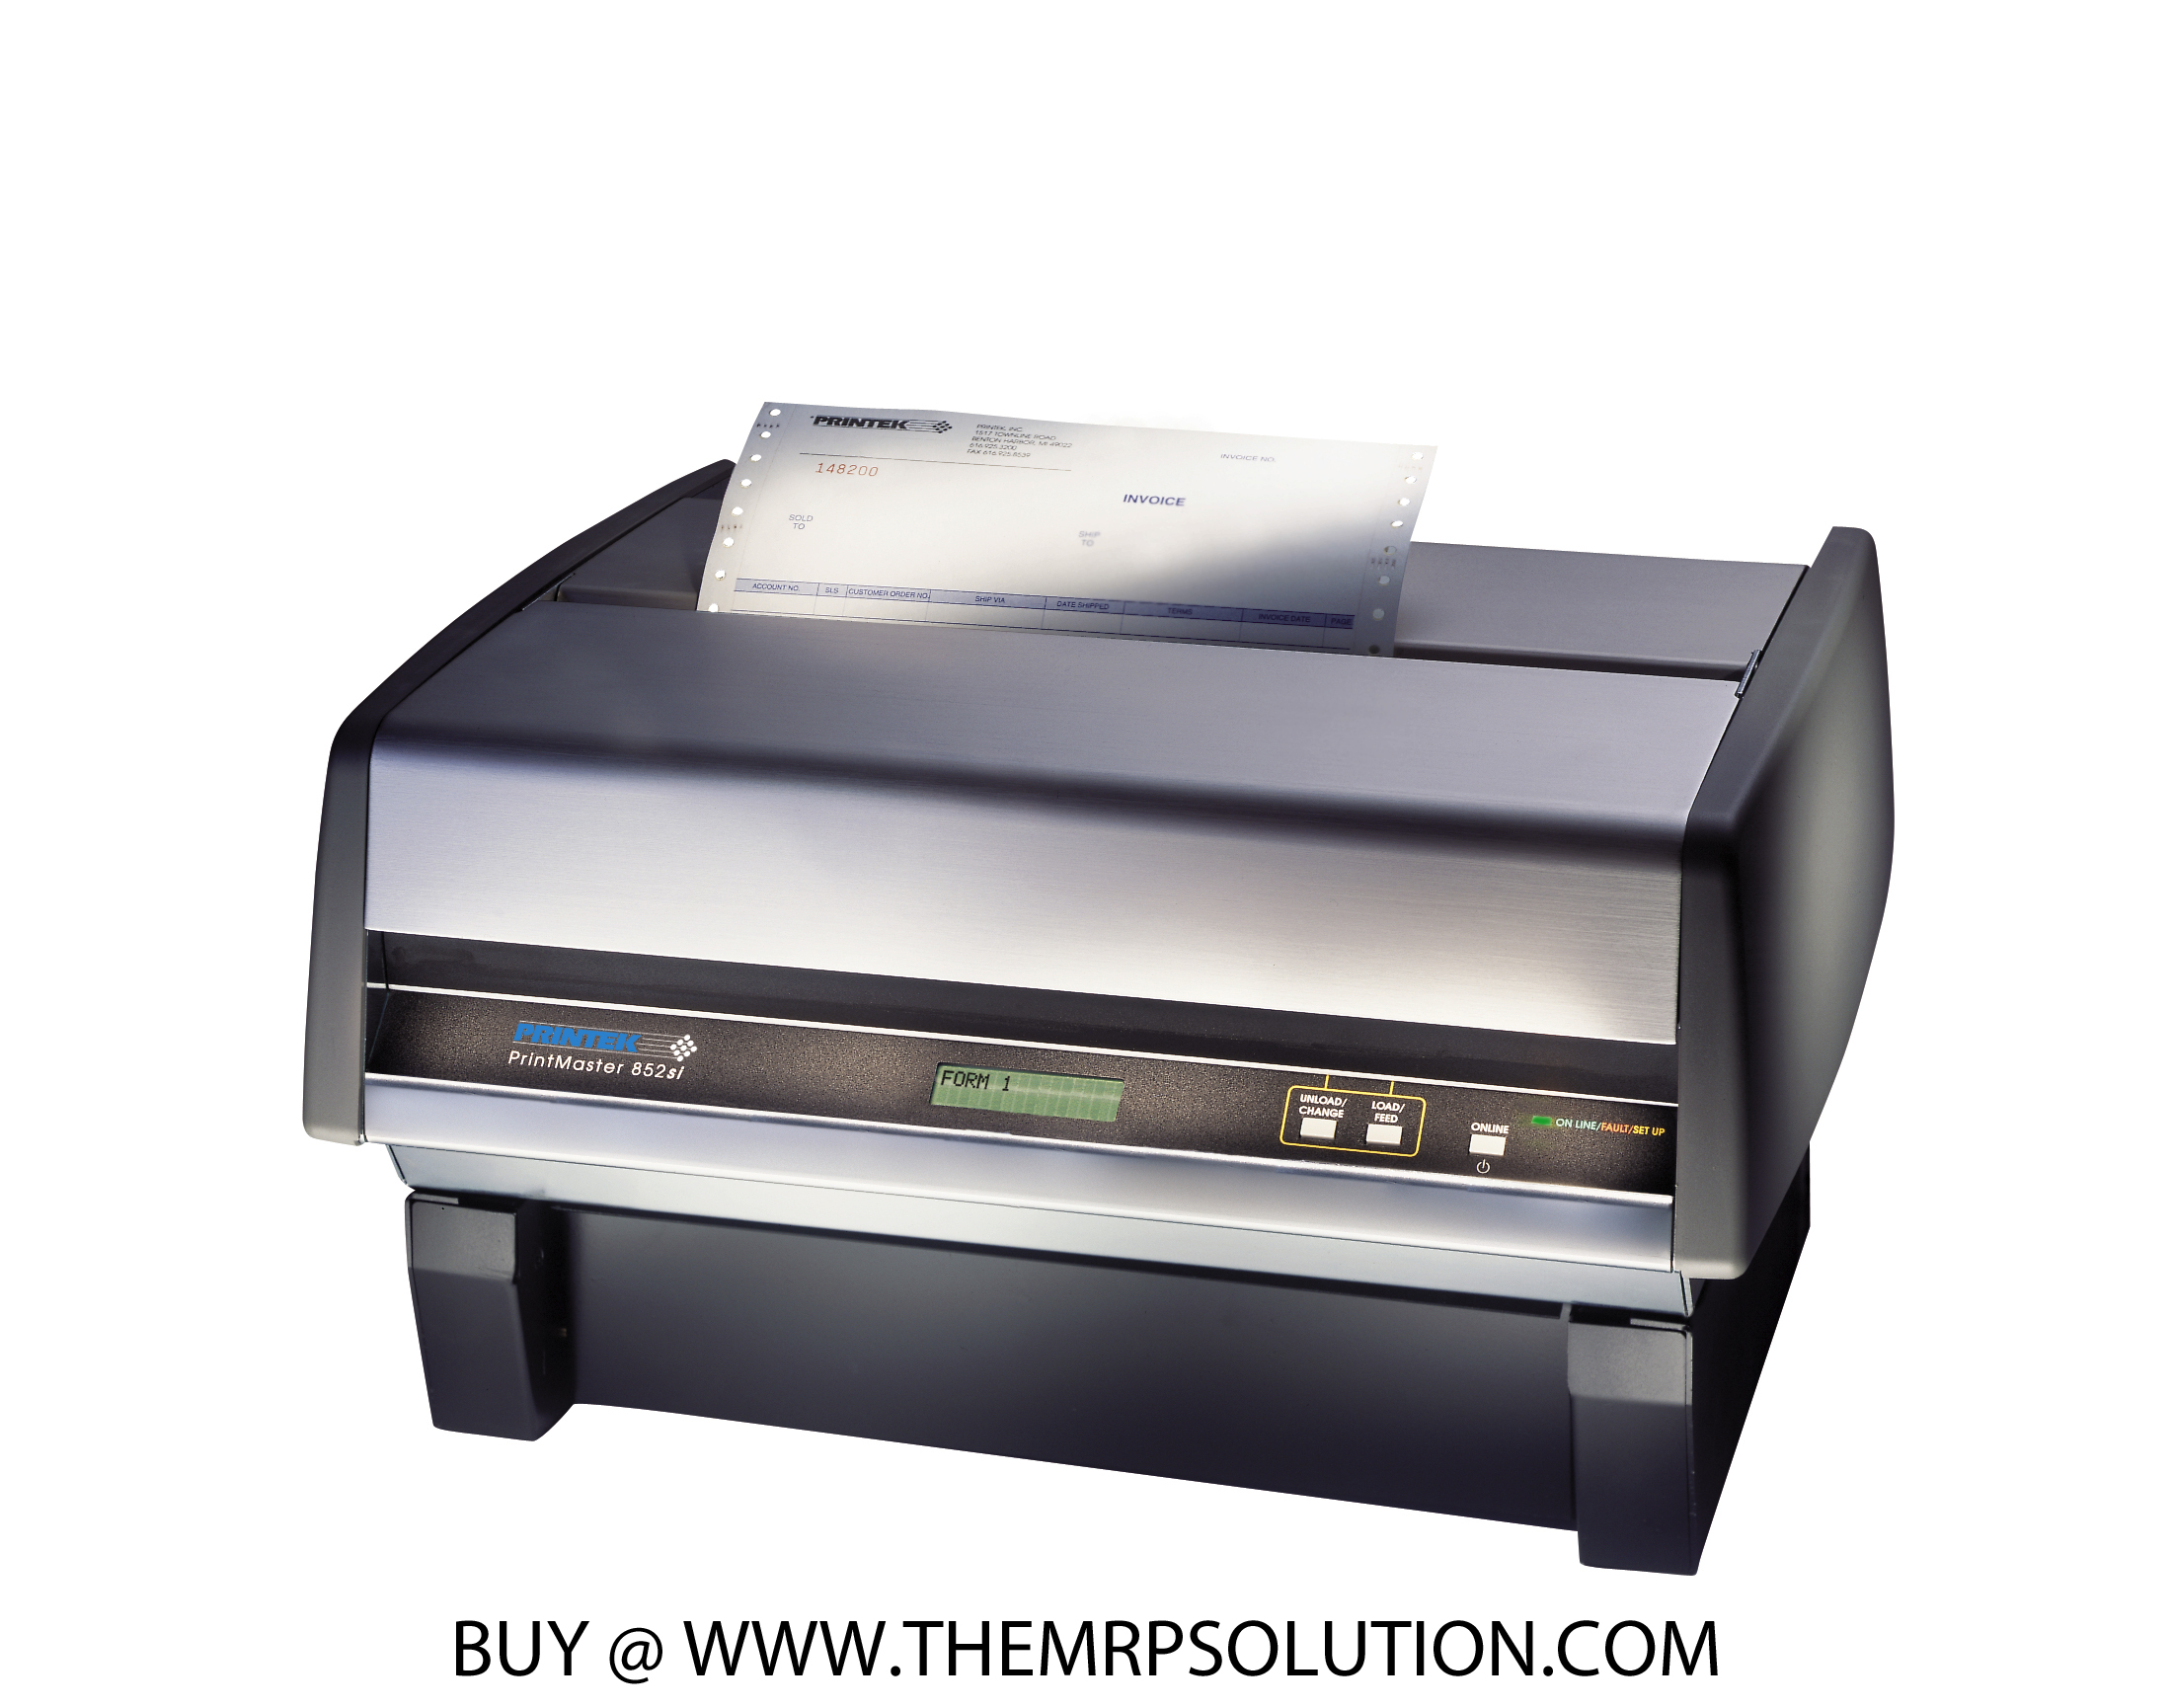 PRINTEK PM-852SI PRINTER, COMPLETE, PM852SI Refurbished